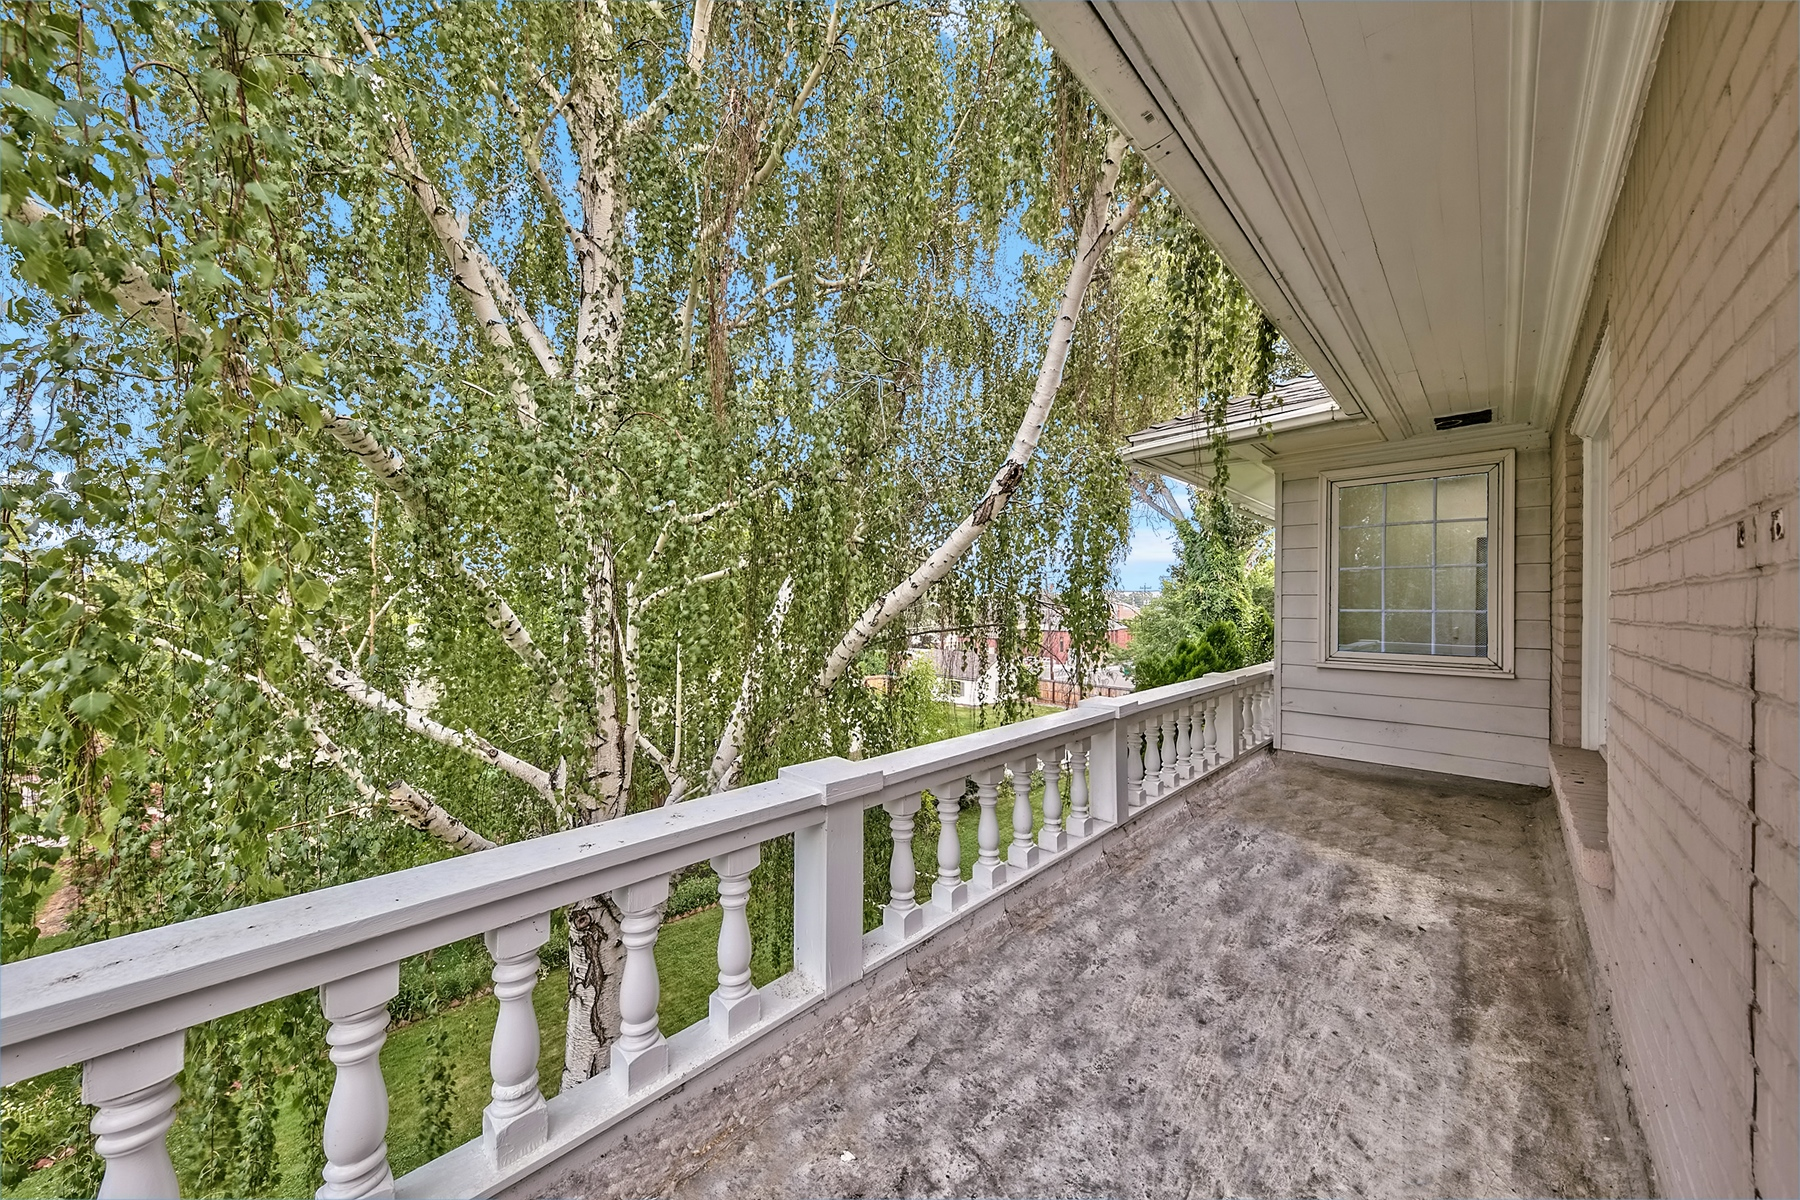 Additional photo for property listing at 546 Ridge Street, Reno, Nevada 546 Ridge Street Reno, Nevada 89501 United States